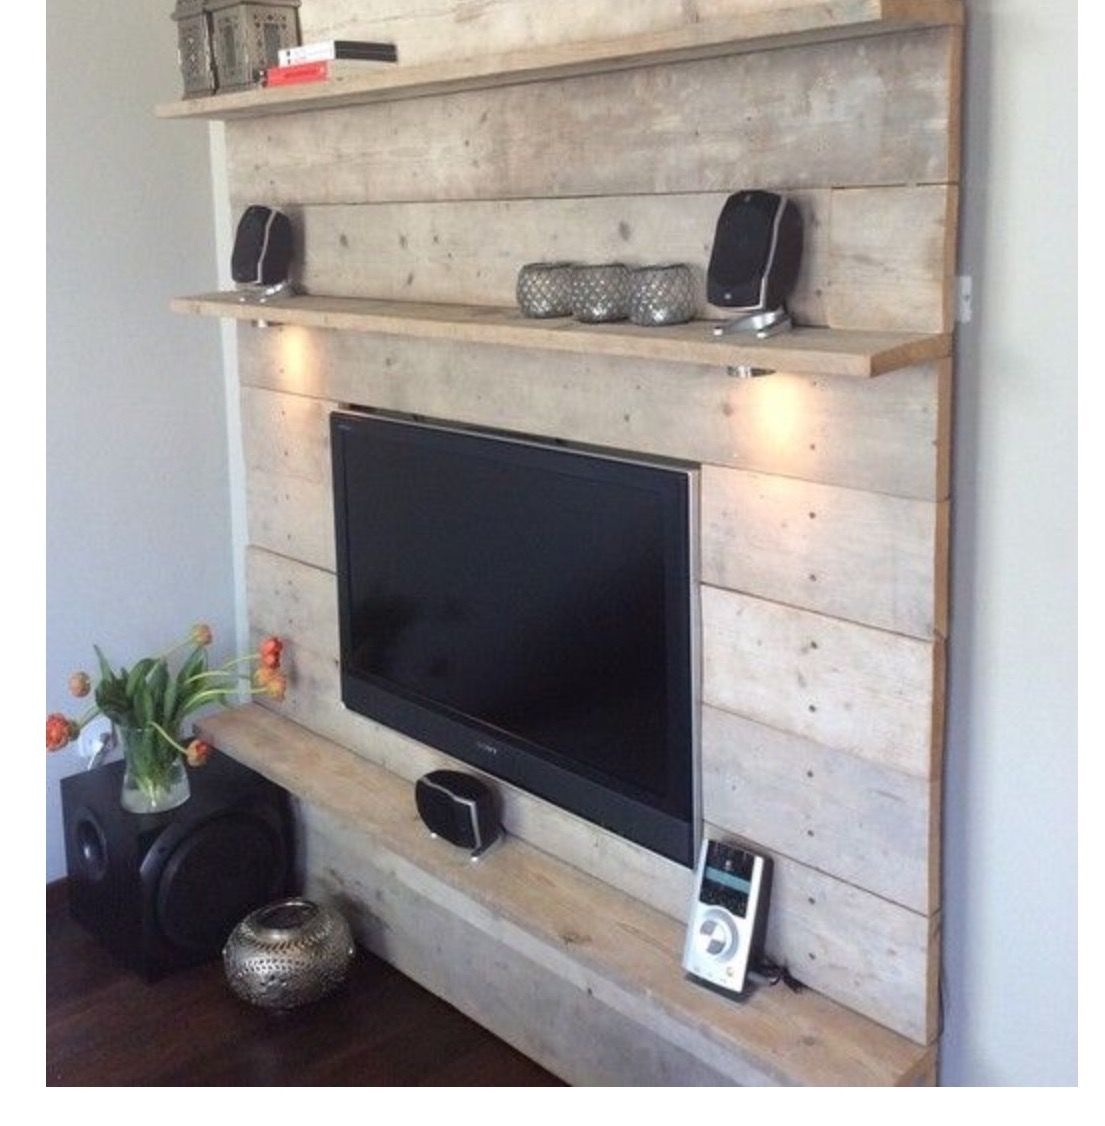 Pin by jeannette on marvin project in pinterest tvs room